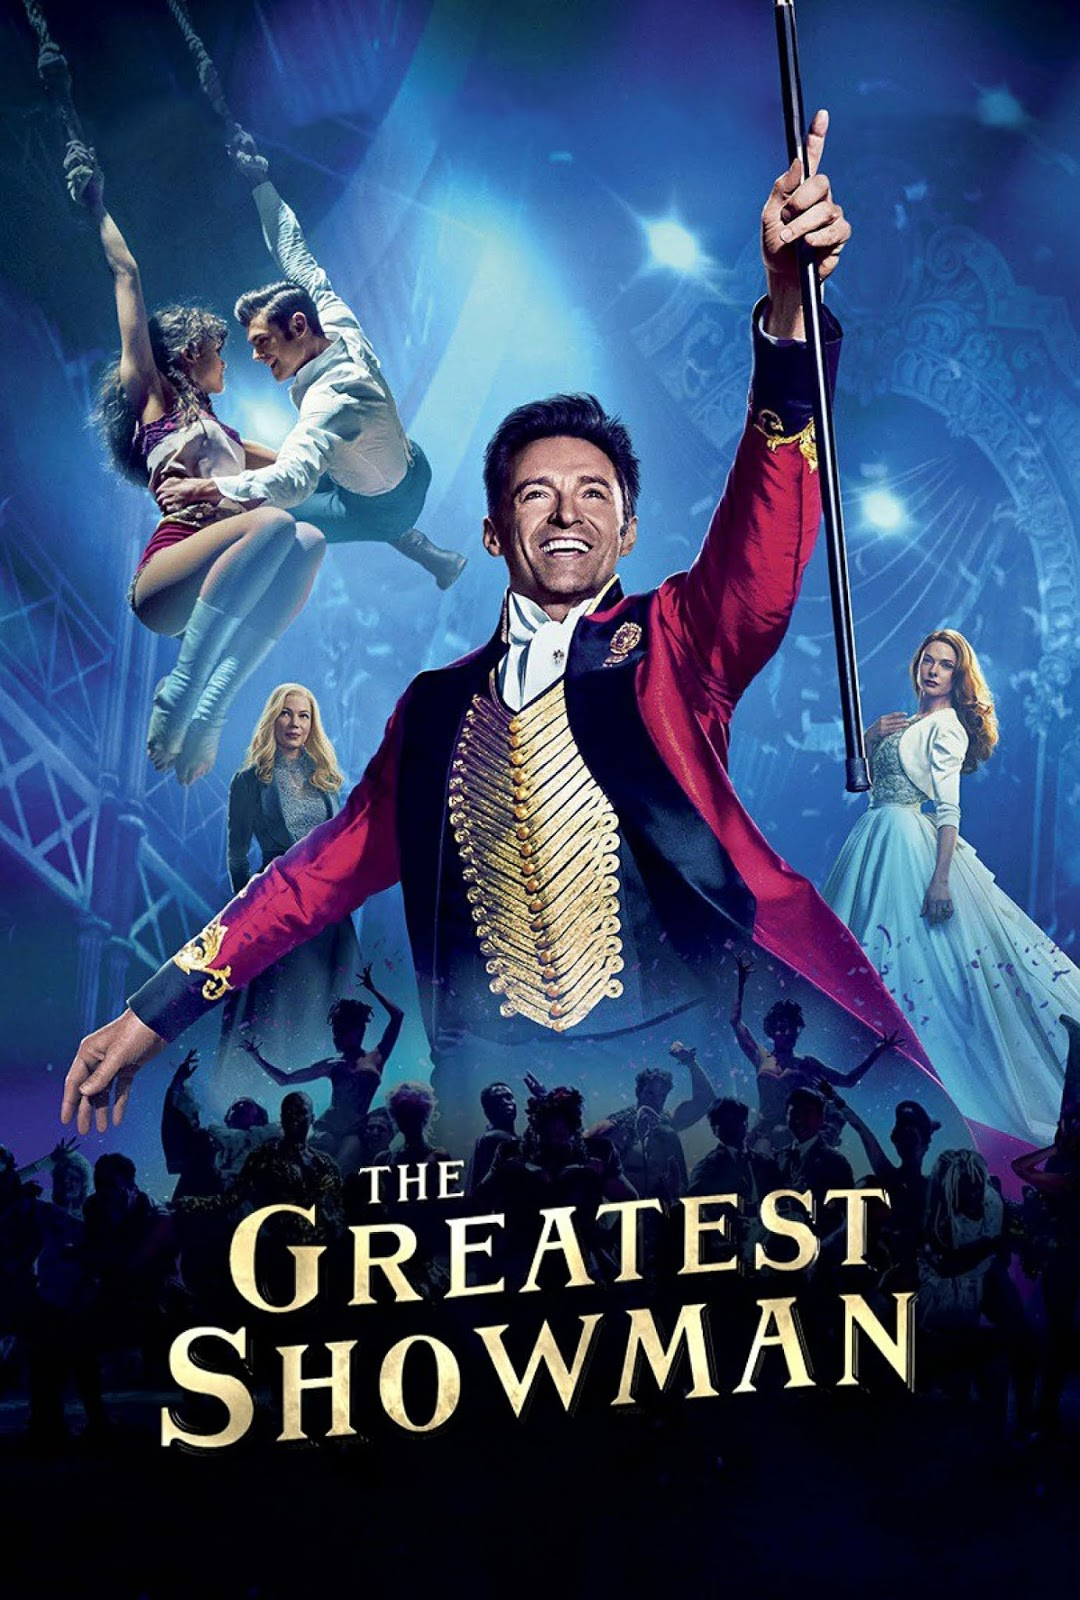 The Greatest Showman P.T. Barnum Cosplay Costume Outfit